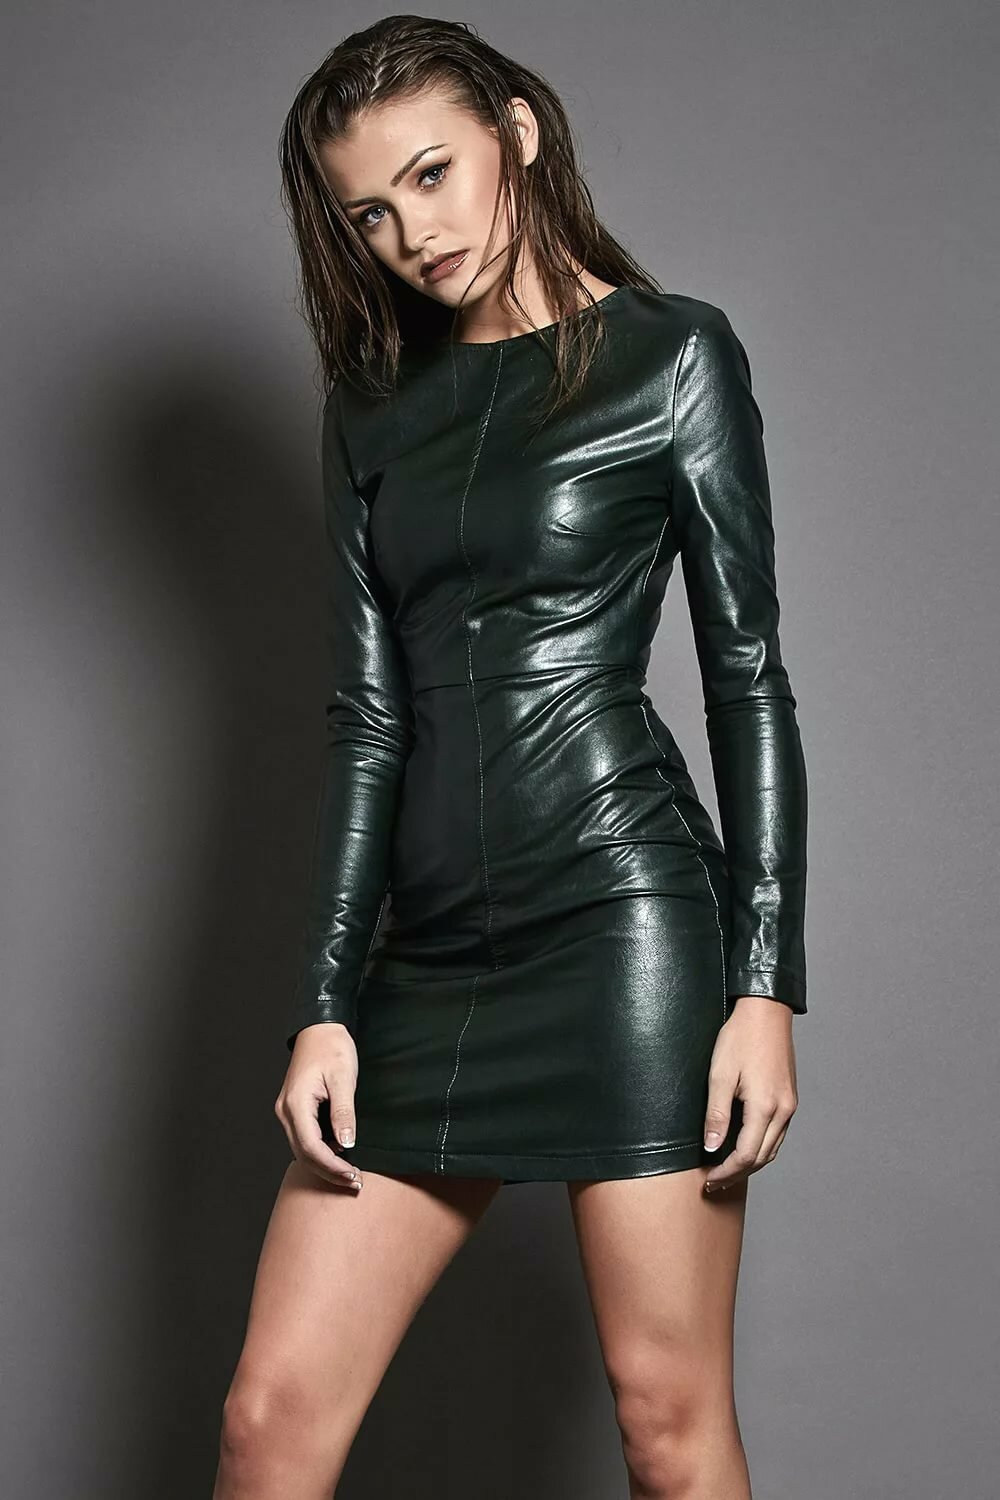 Hot girl in leather — photo 5